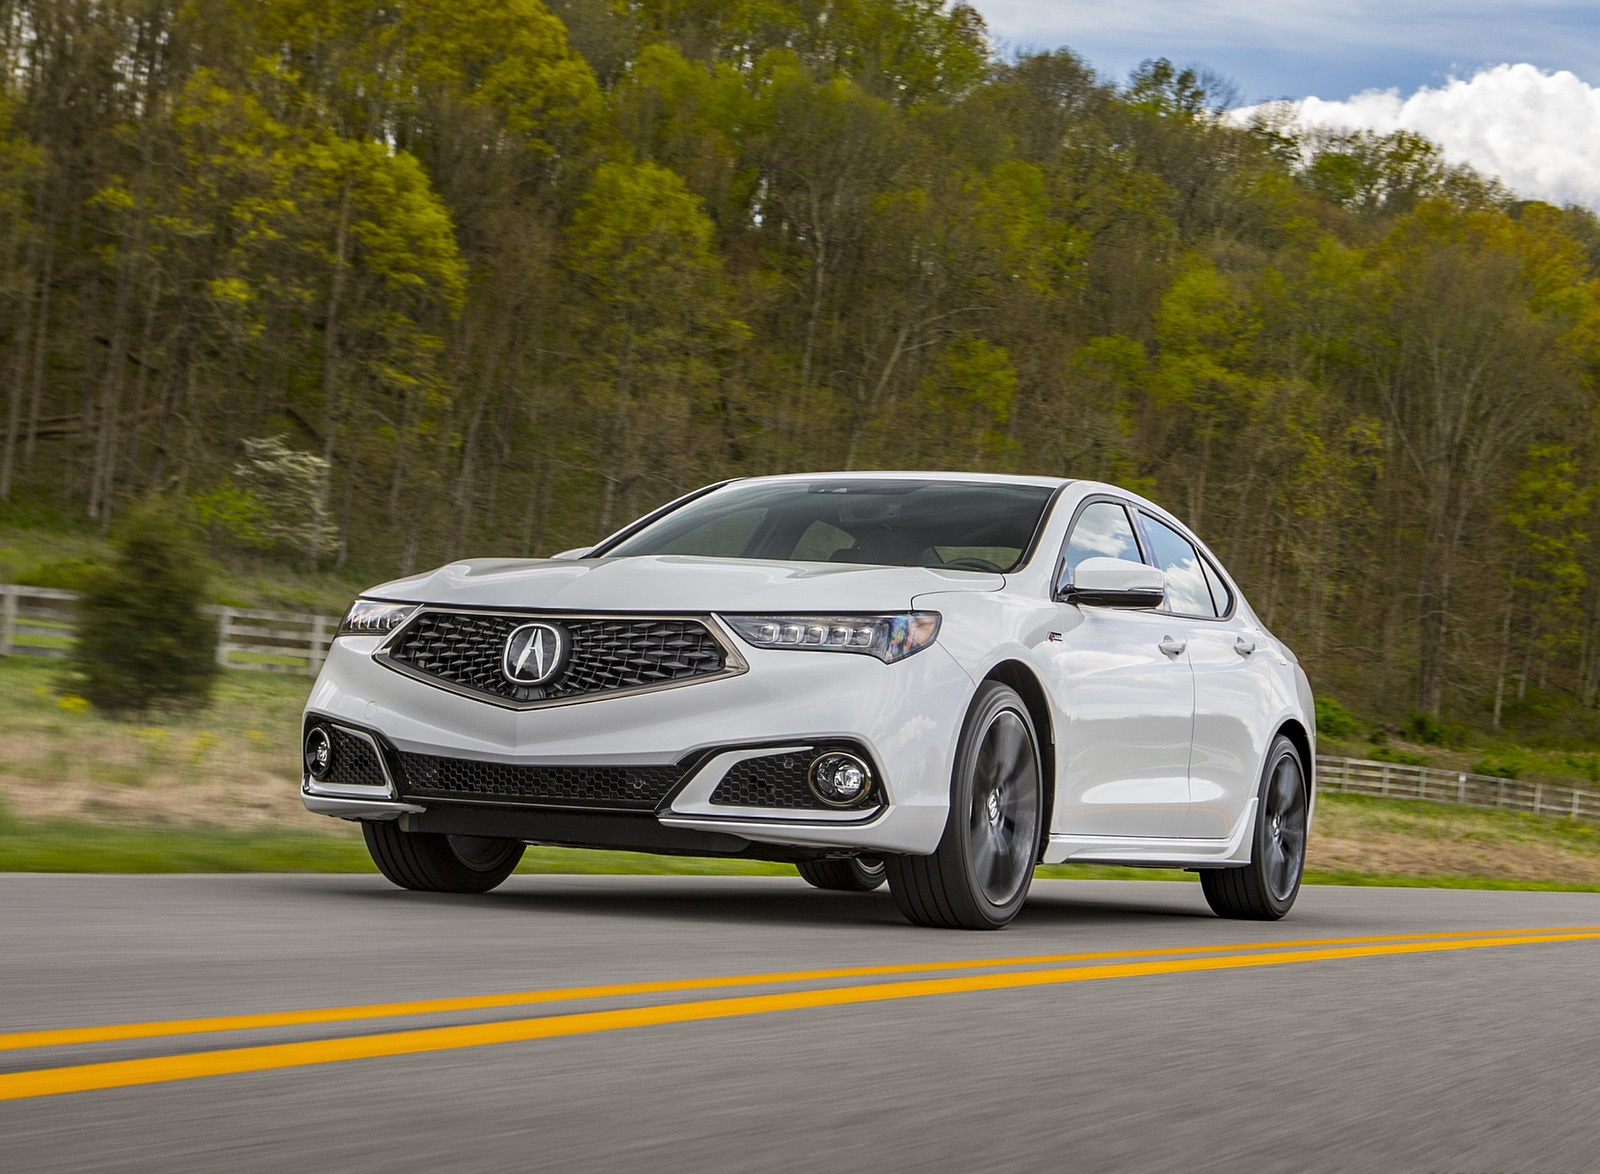 2019 Acura TLX A-Spec SH-AWD Front Wallpapers (5)